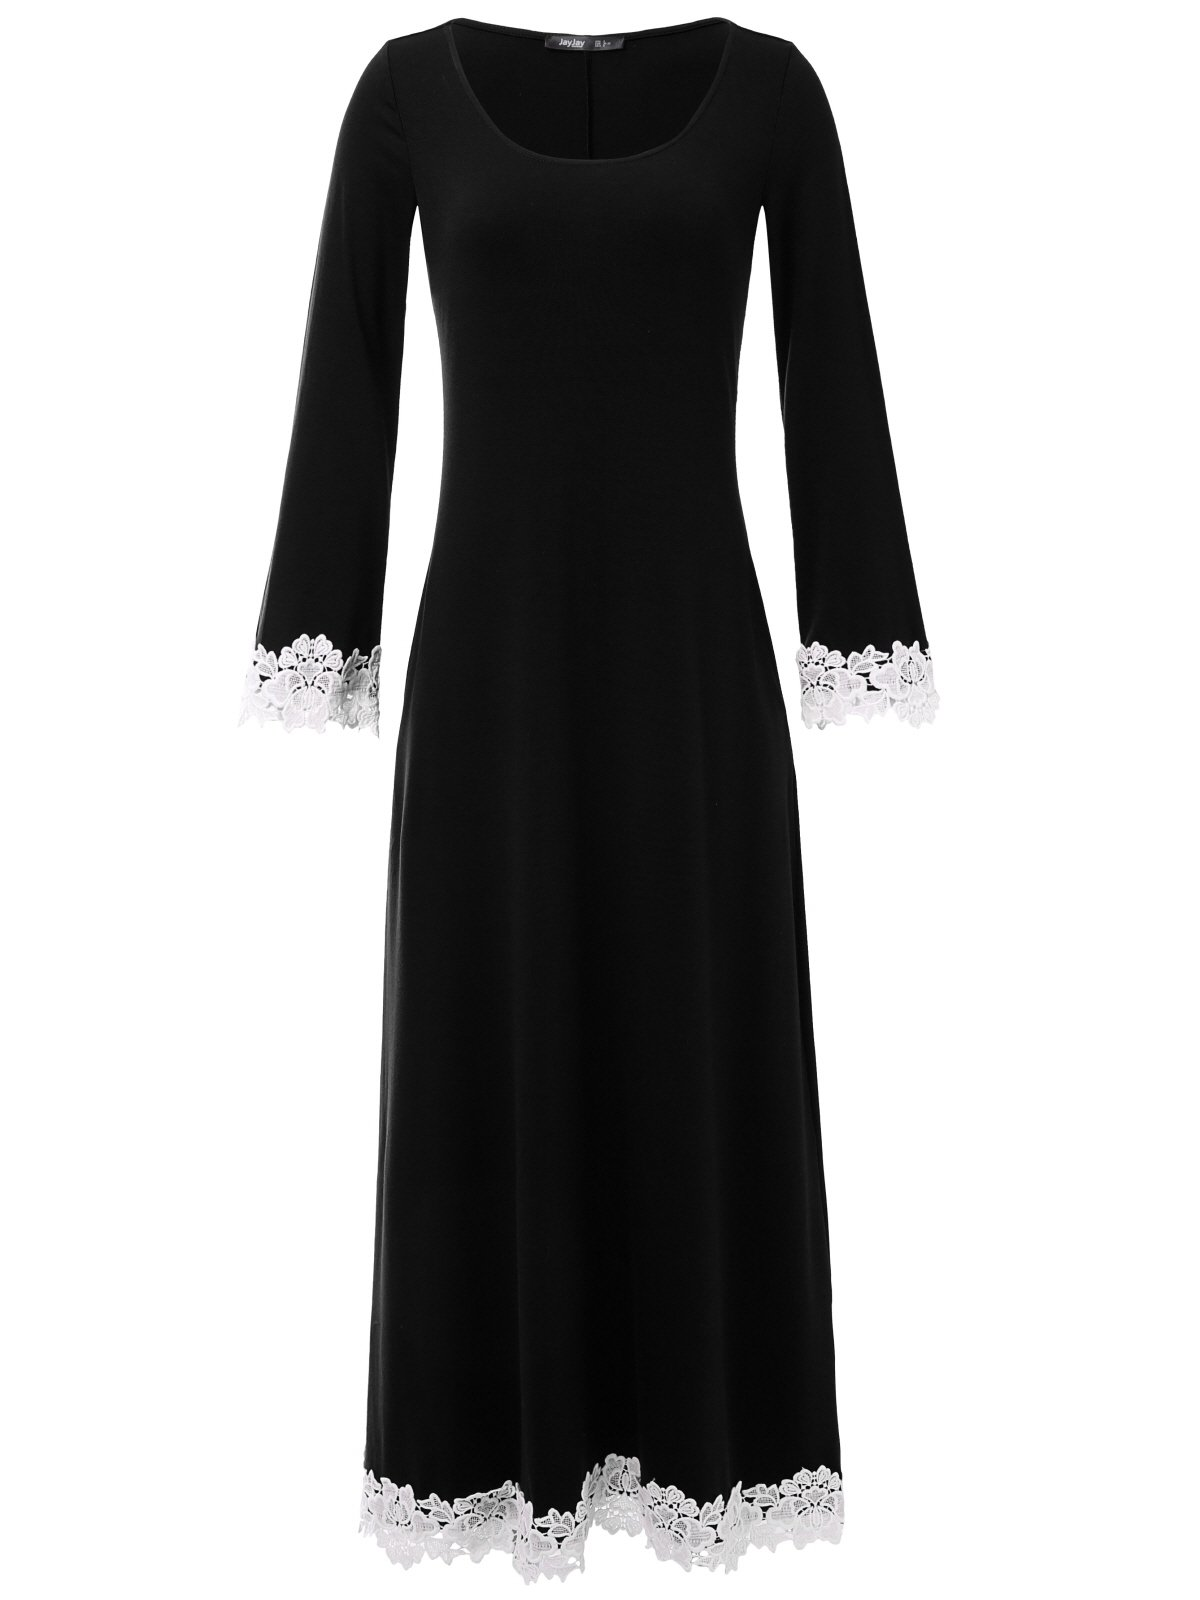 JayJay Women Gorgeous Long Trumpet Sleeve Lacy Maxi Dress with Pocket,Black,M